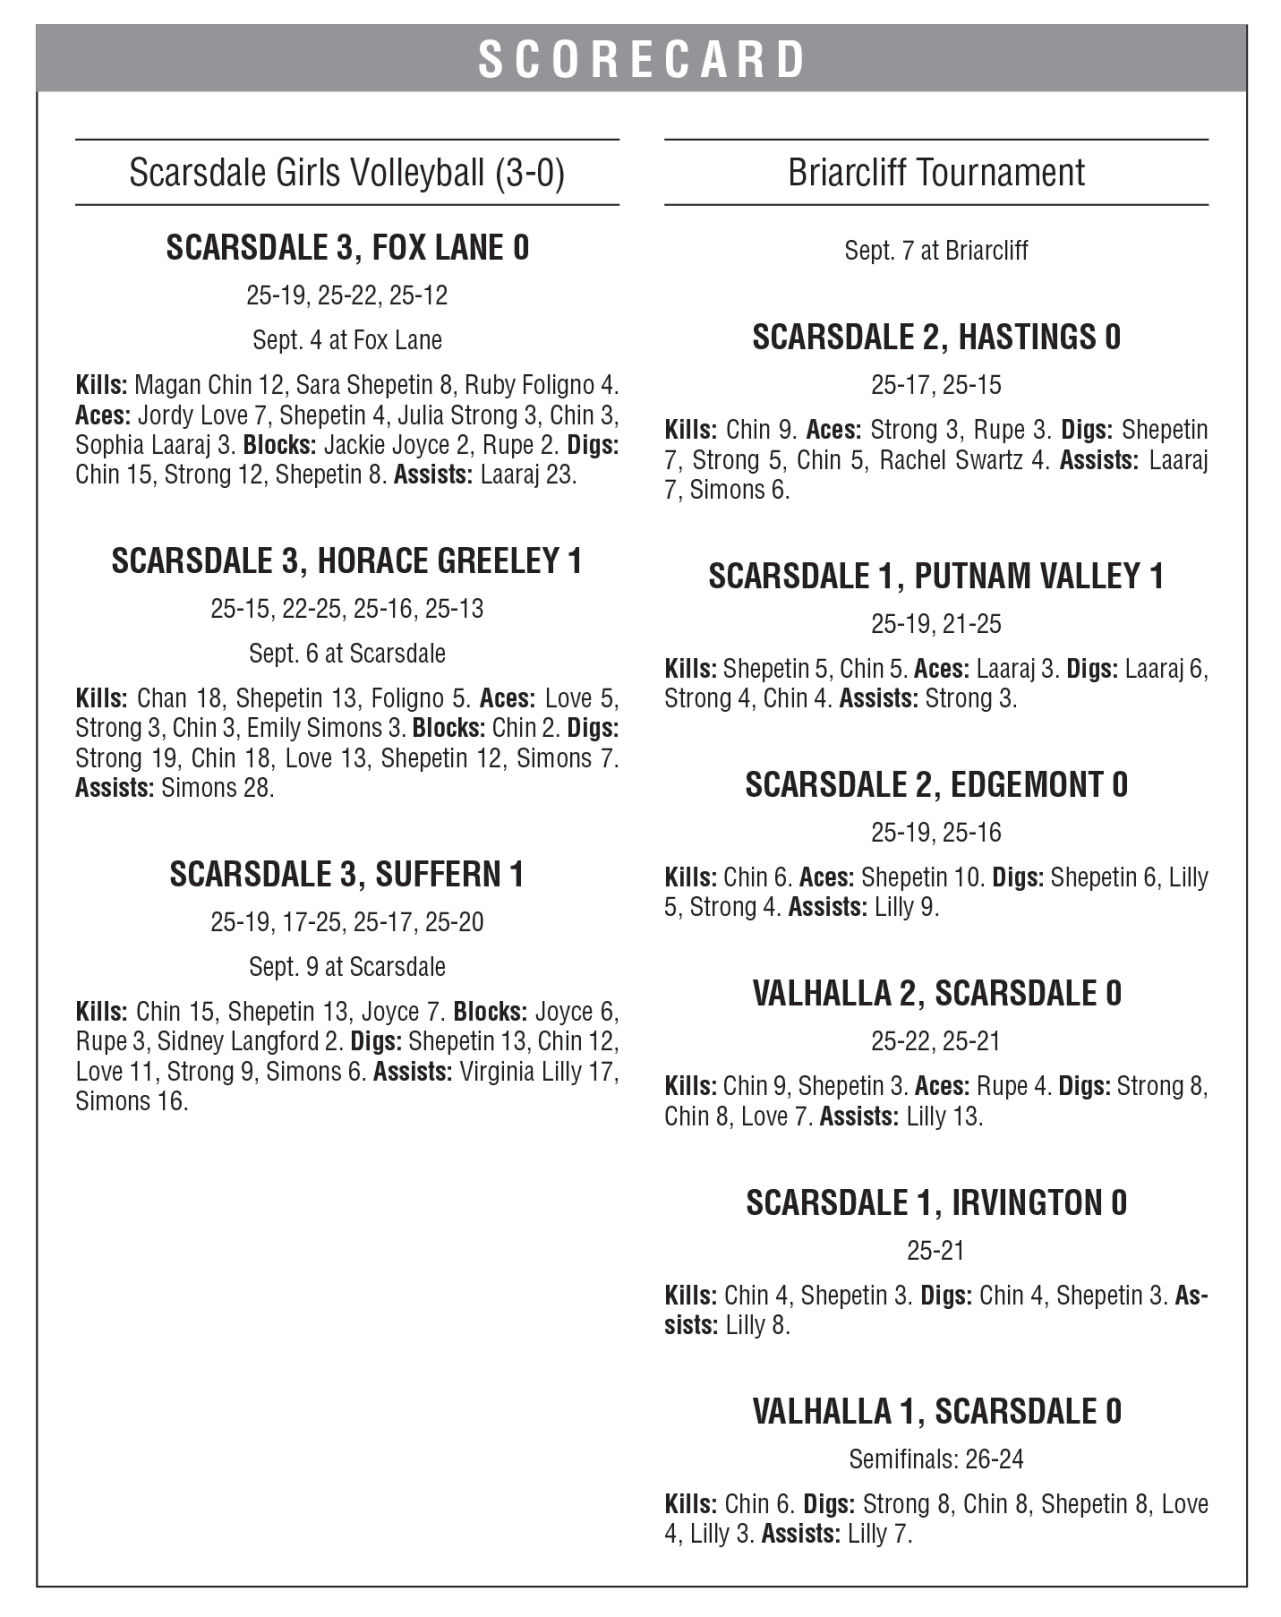 Scarsdale girls volleyball boxscore 9/13 issue